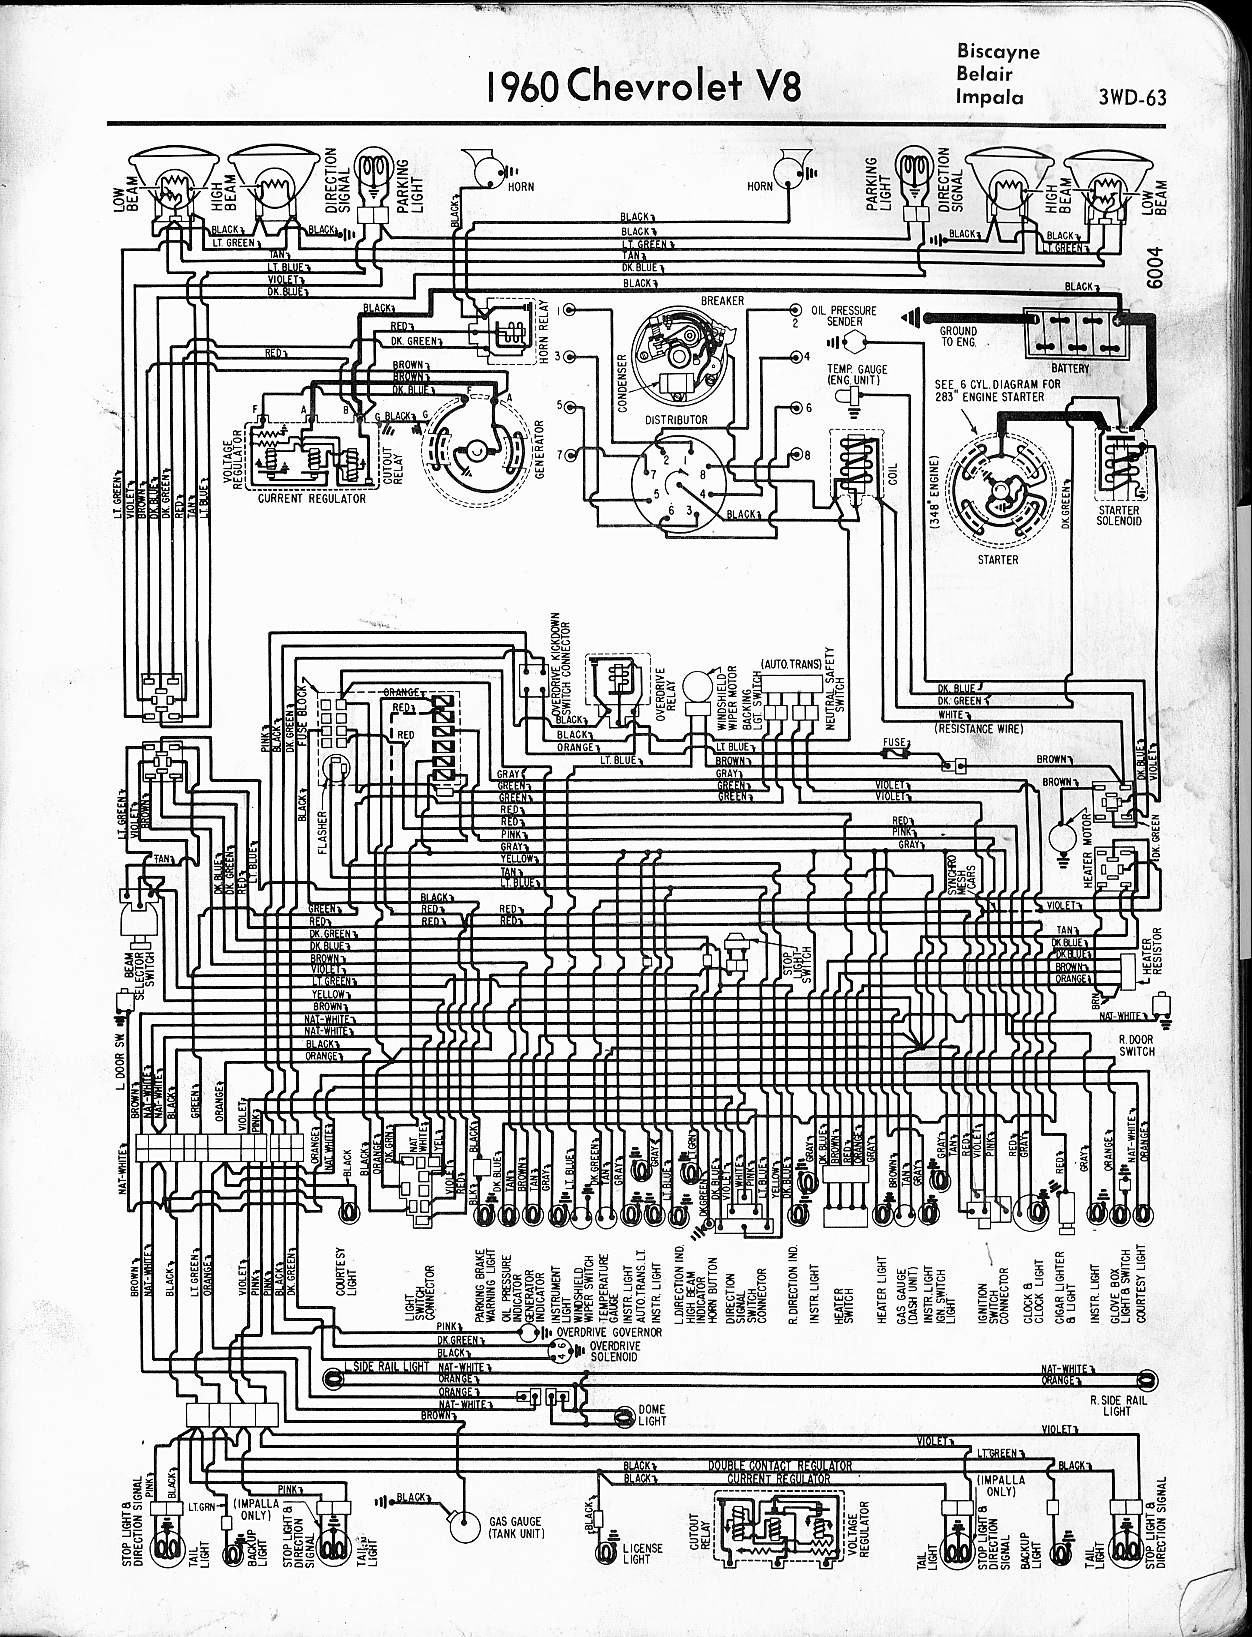 hight resolution of 2001 chevy impala engine diagram 57 65 chevy wiring diagrams of 2001 chevy impala engine diagram